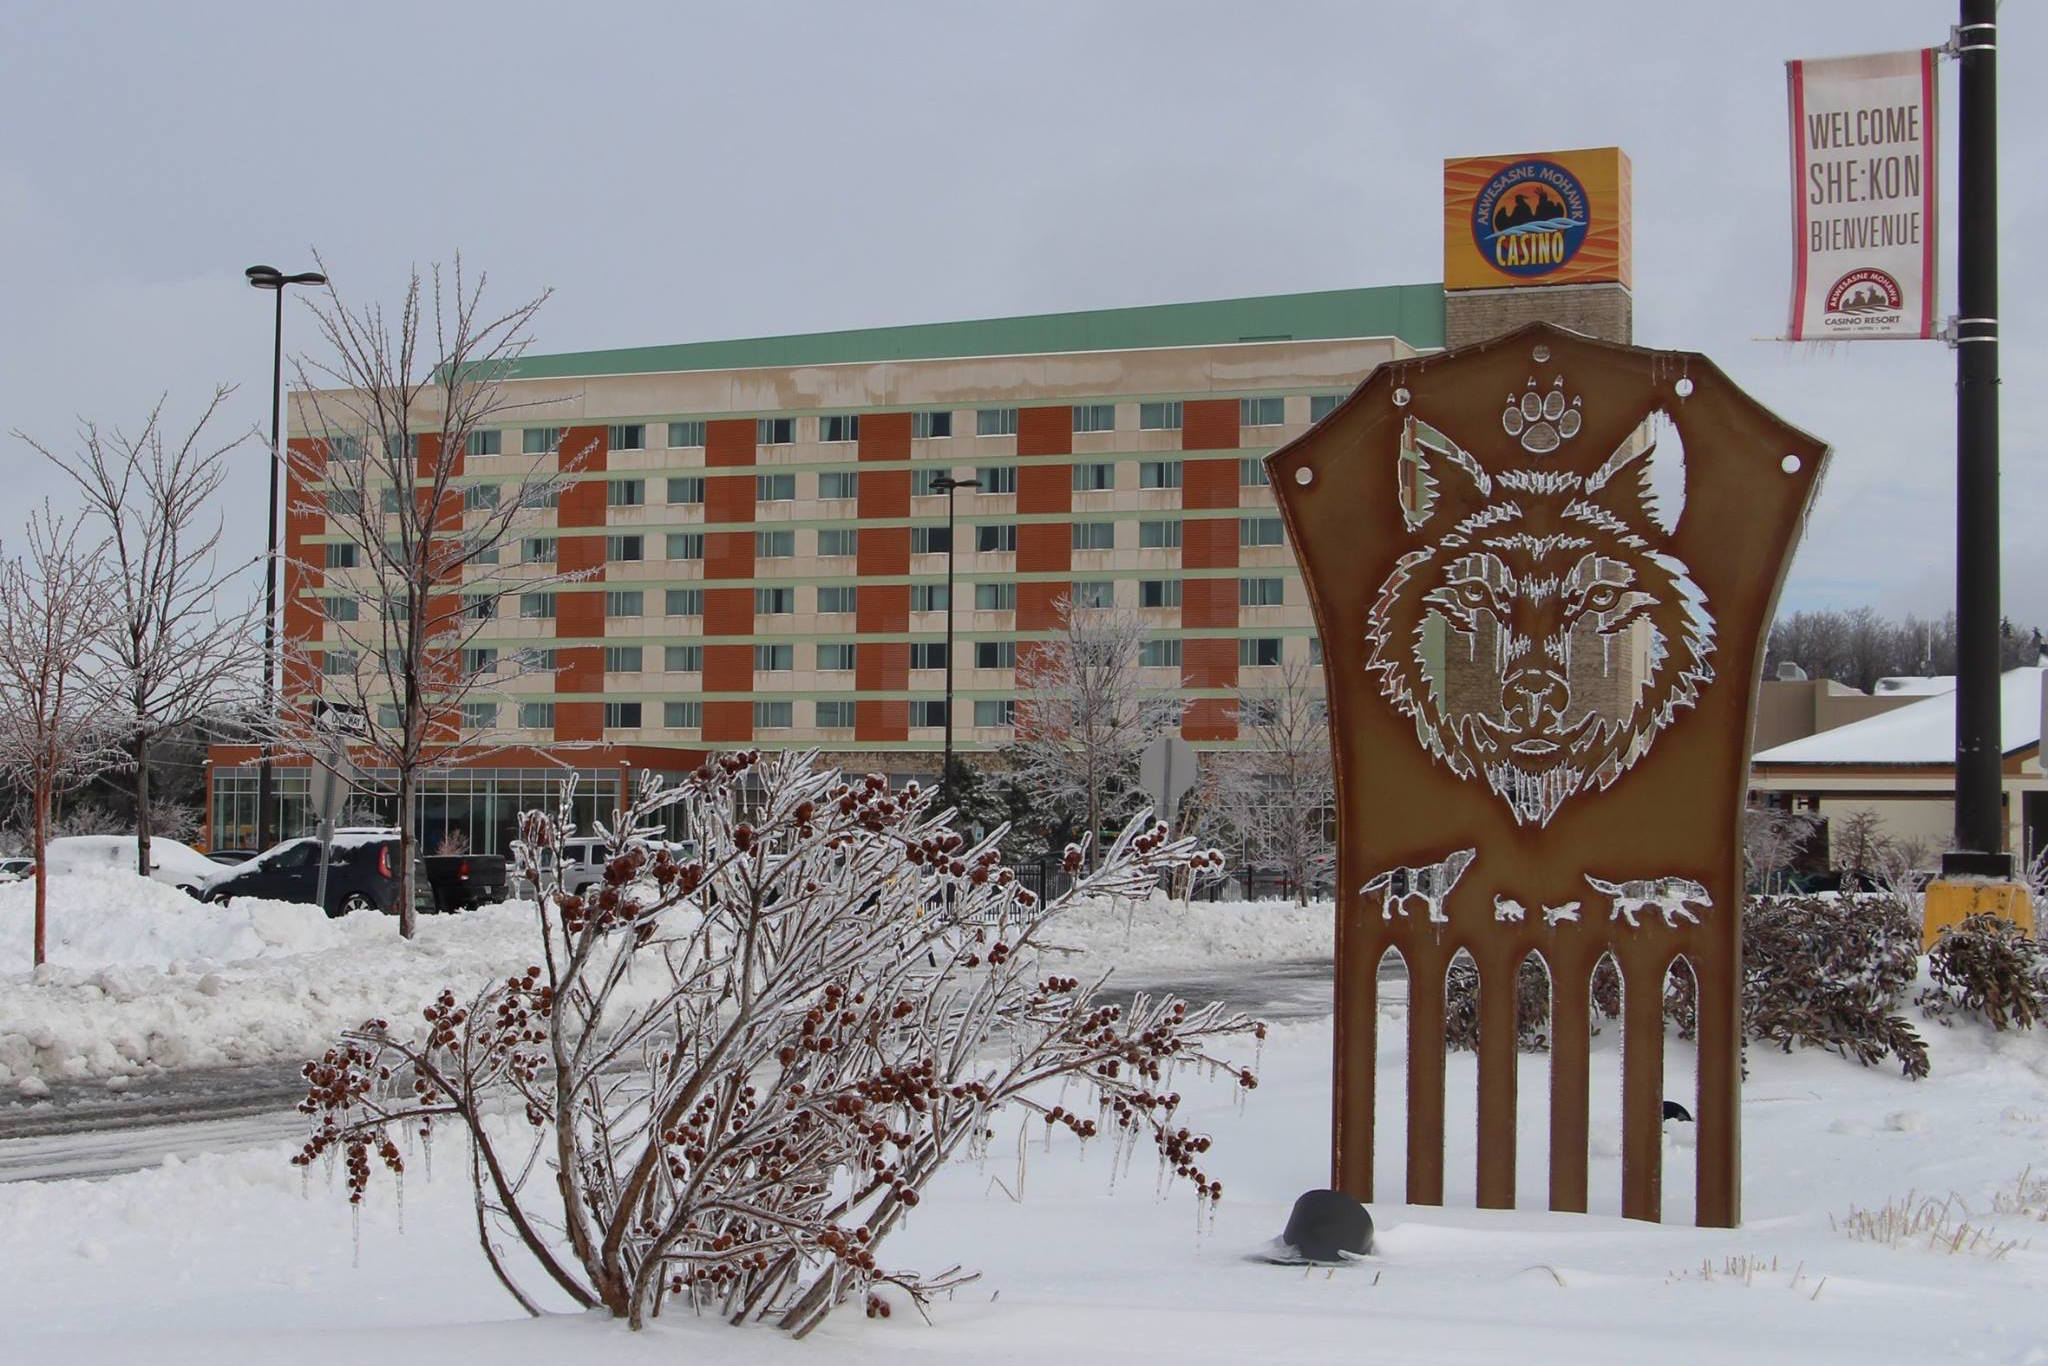 Editorial: New commercial casino won't hurt St. Regis Mohawk Tribe